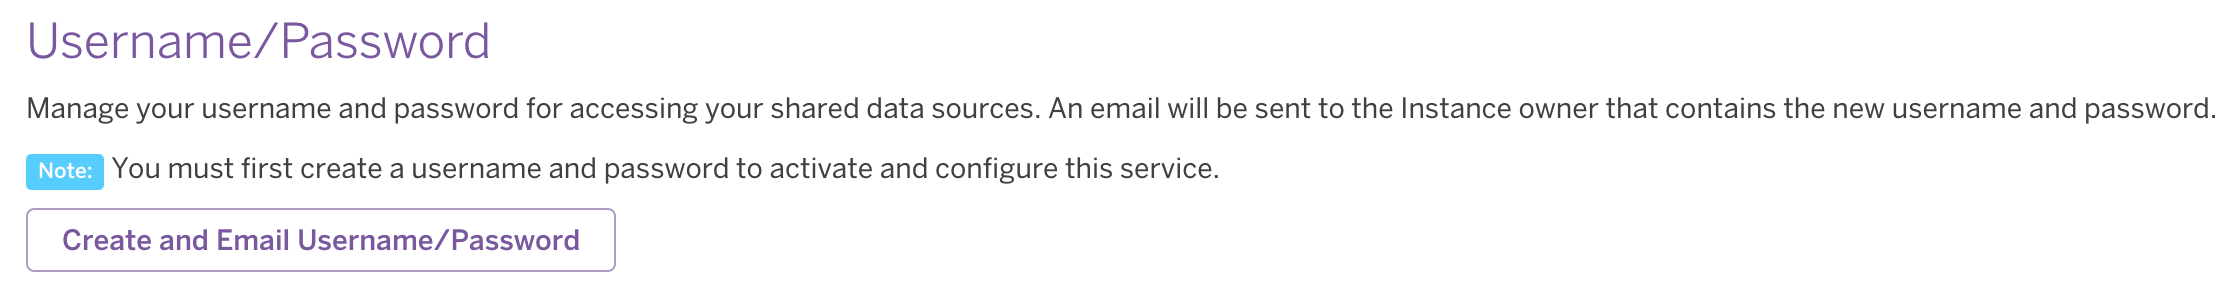 Heroku External Objects UI - 'Create and Email Username/Password' button